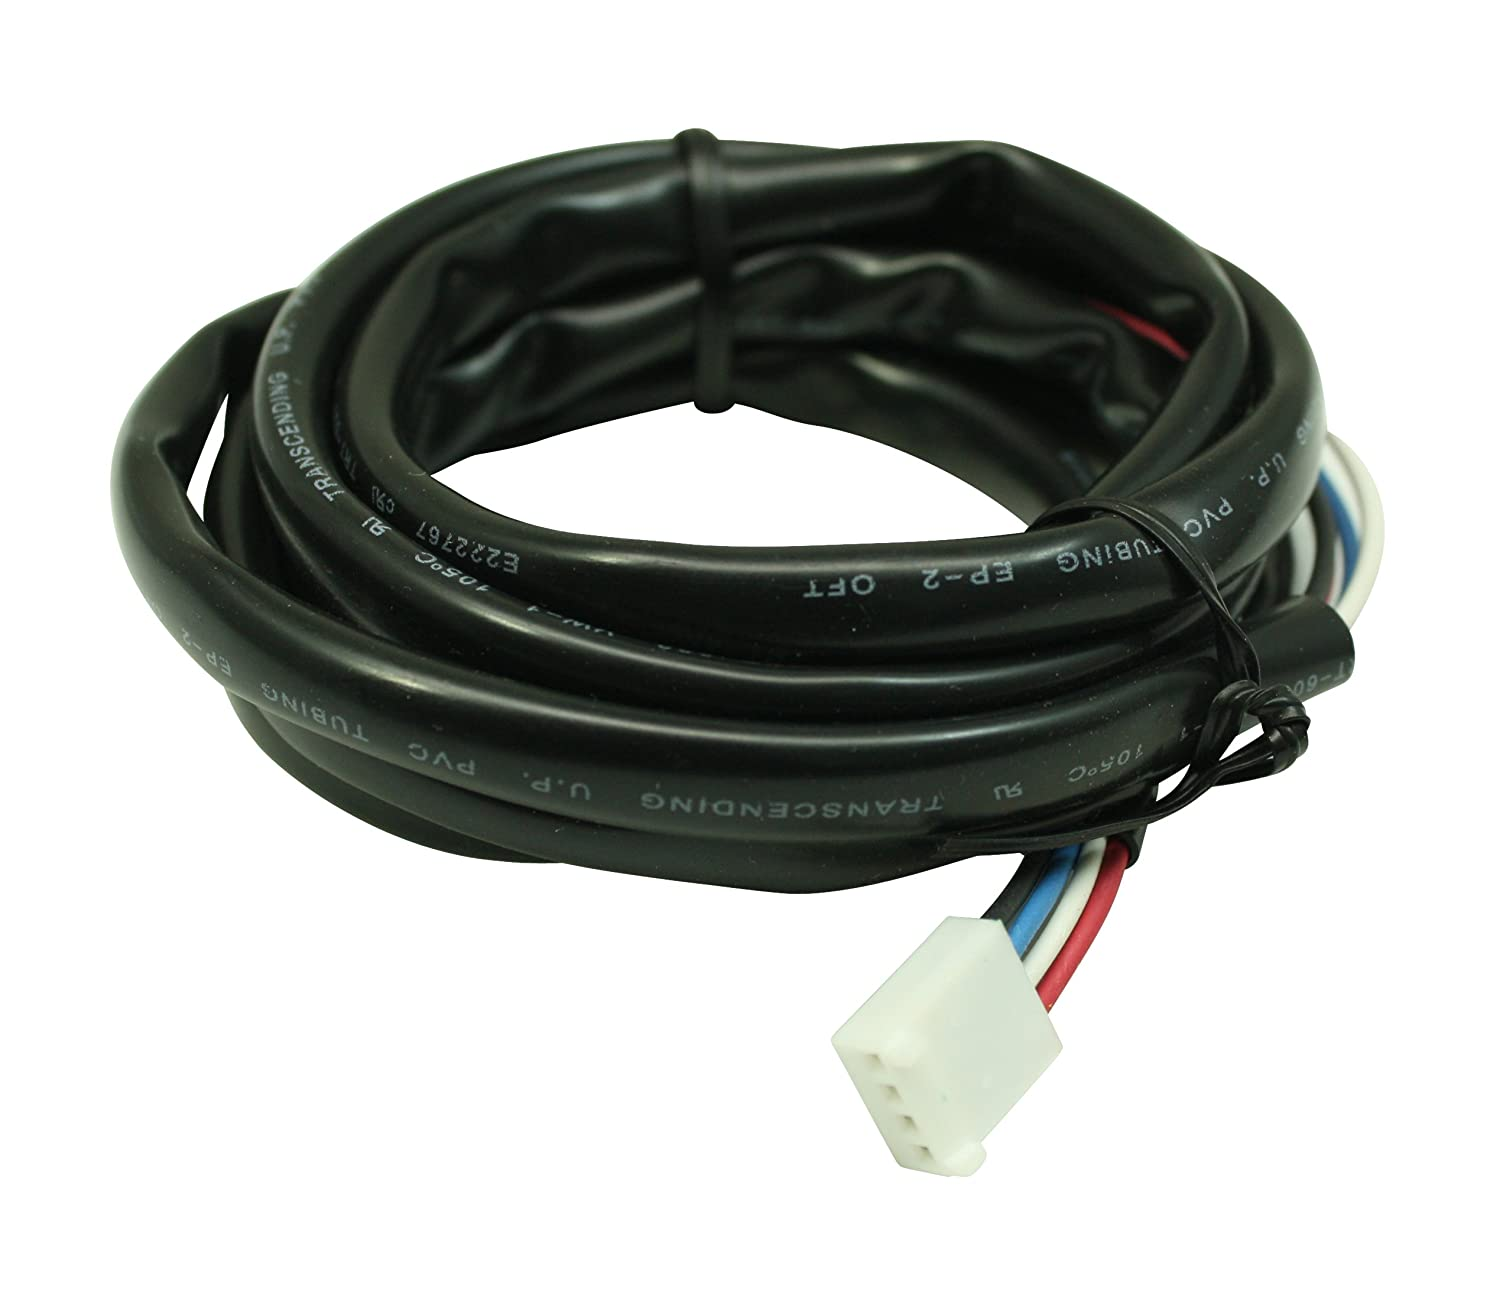 AEM 35-3401 UEGO Power Replacement Cable for Digital Air/Fuel Ratio Gauge